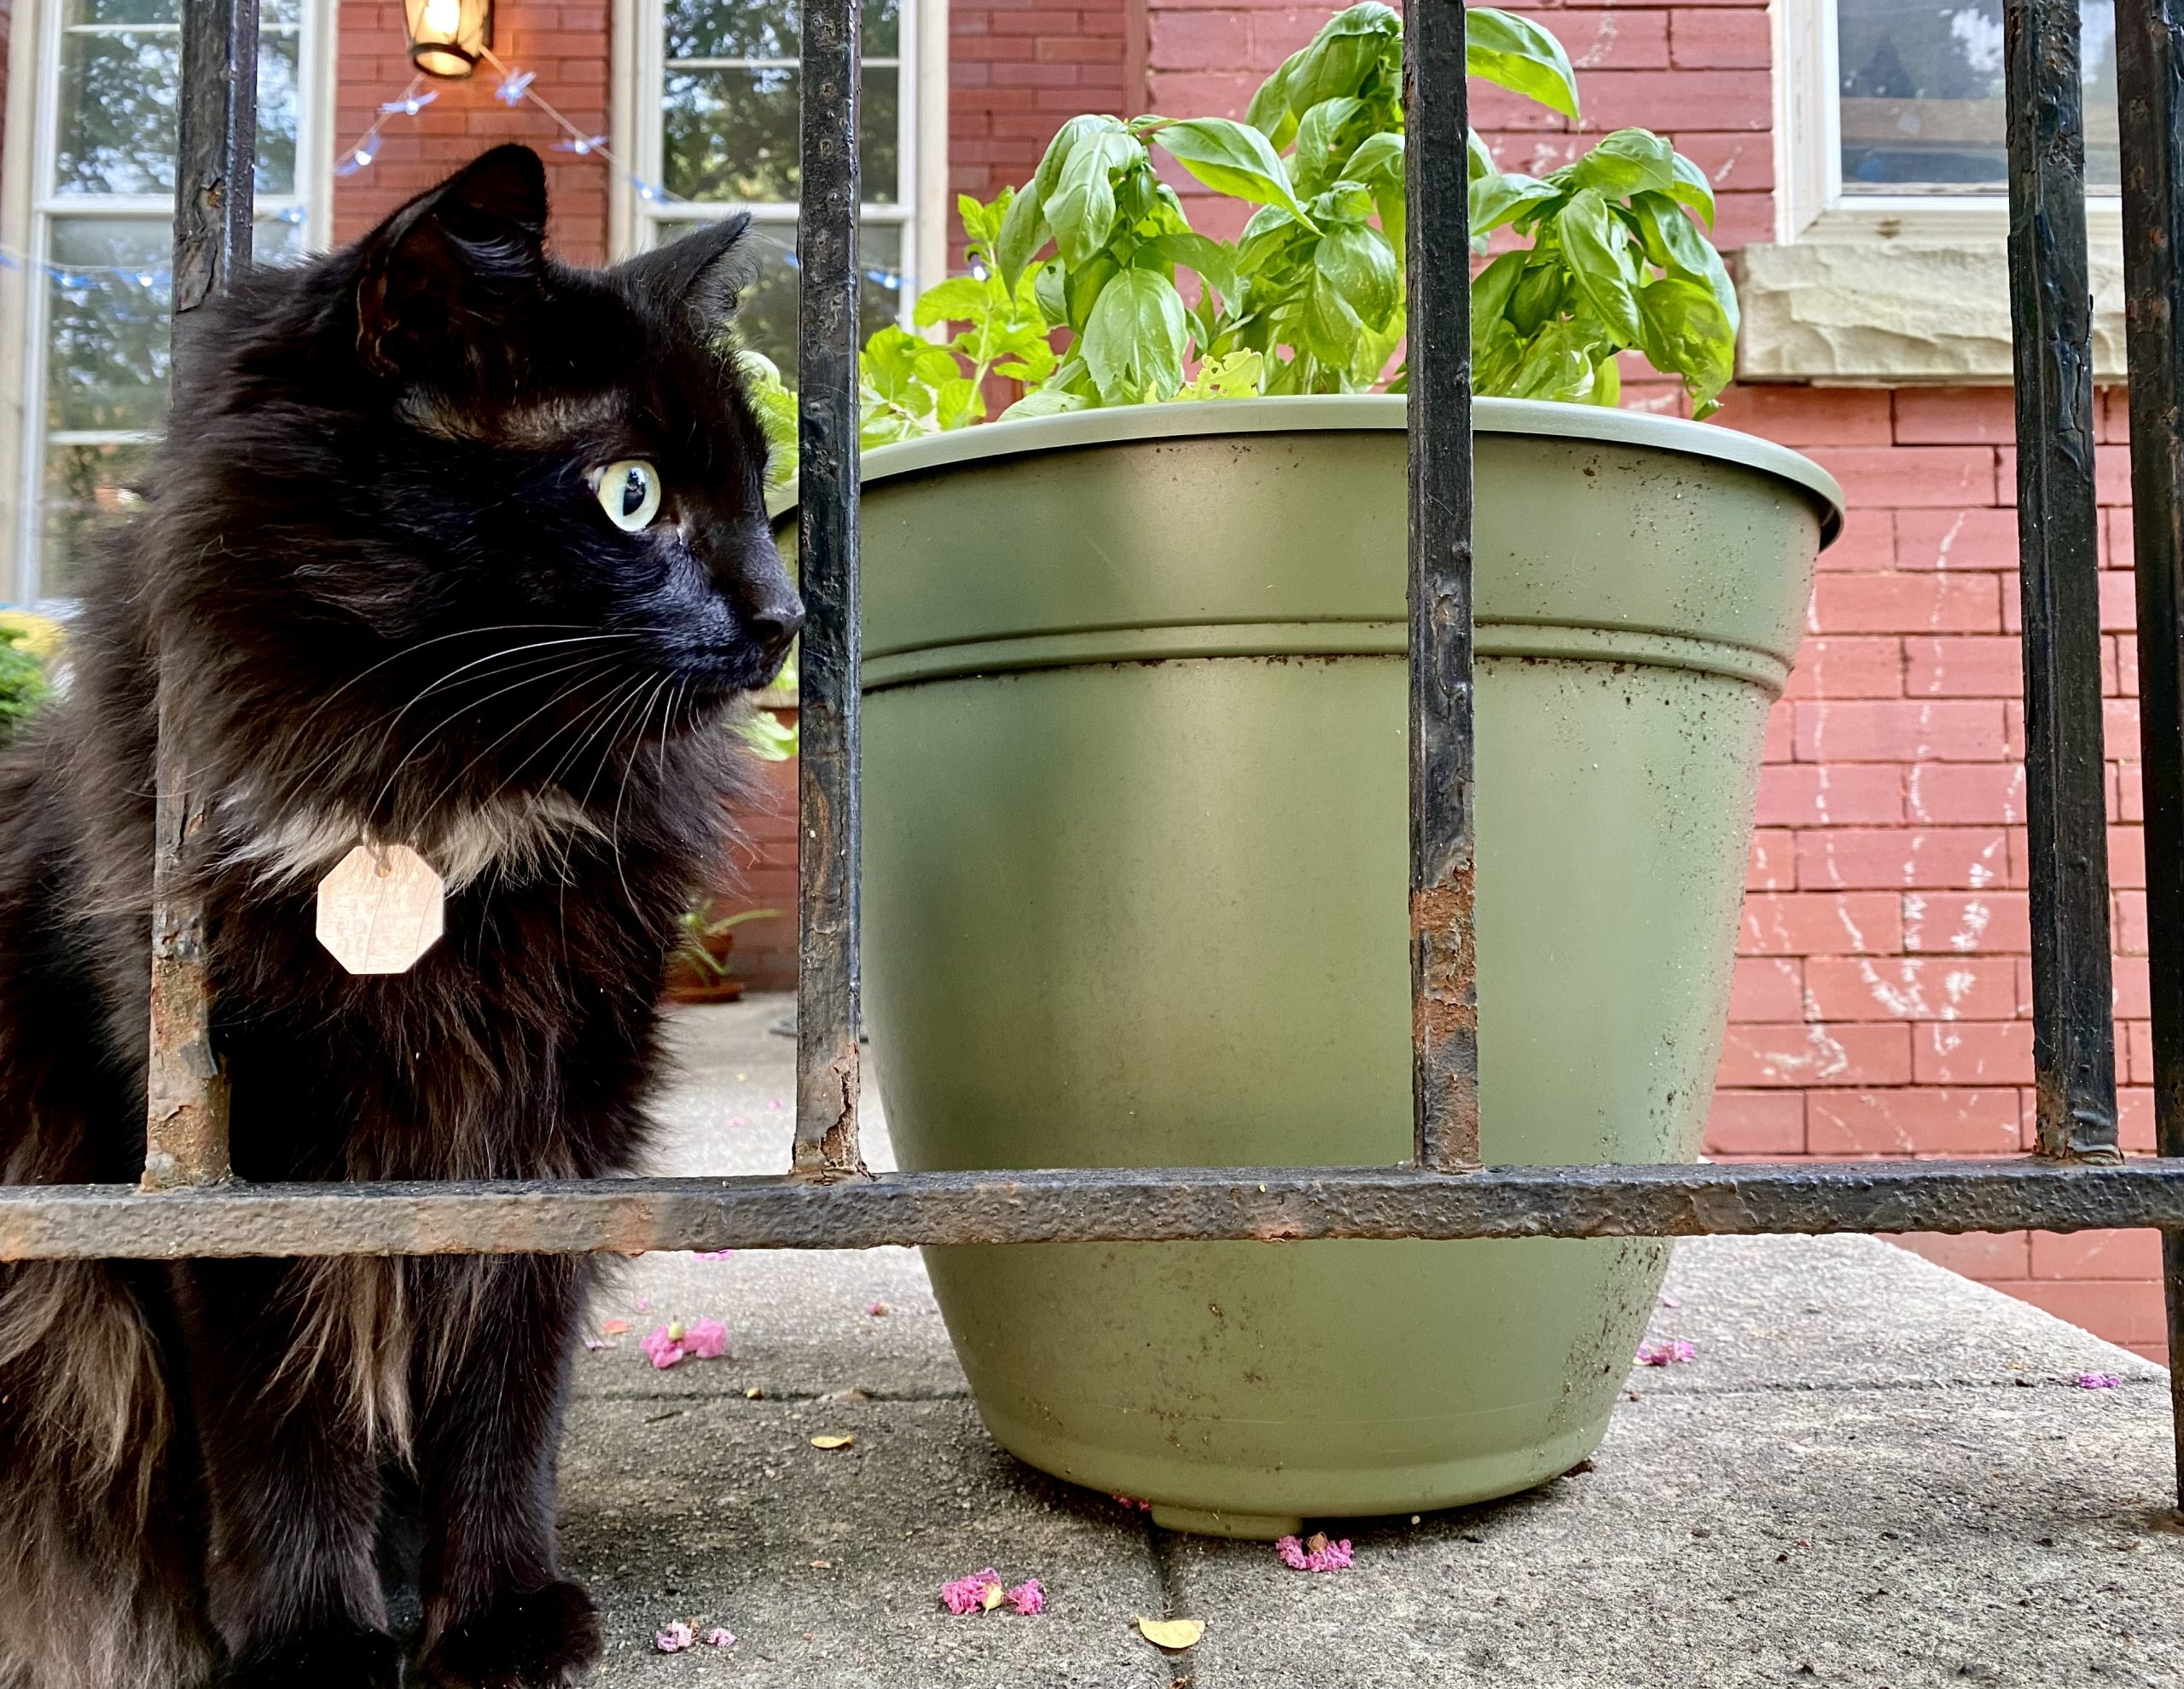 Natalie's cat, Bug, stands beside some potted herbs.